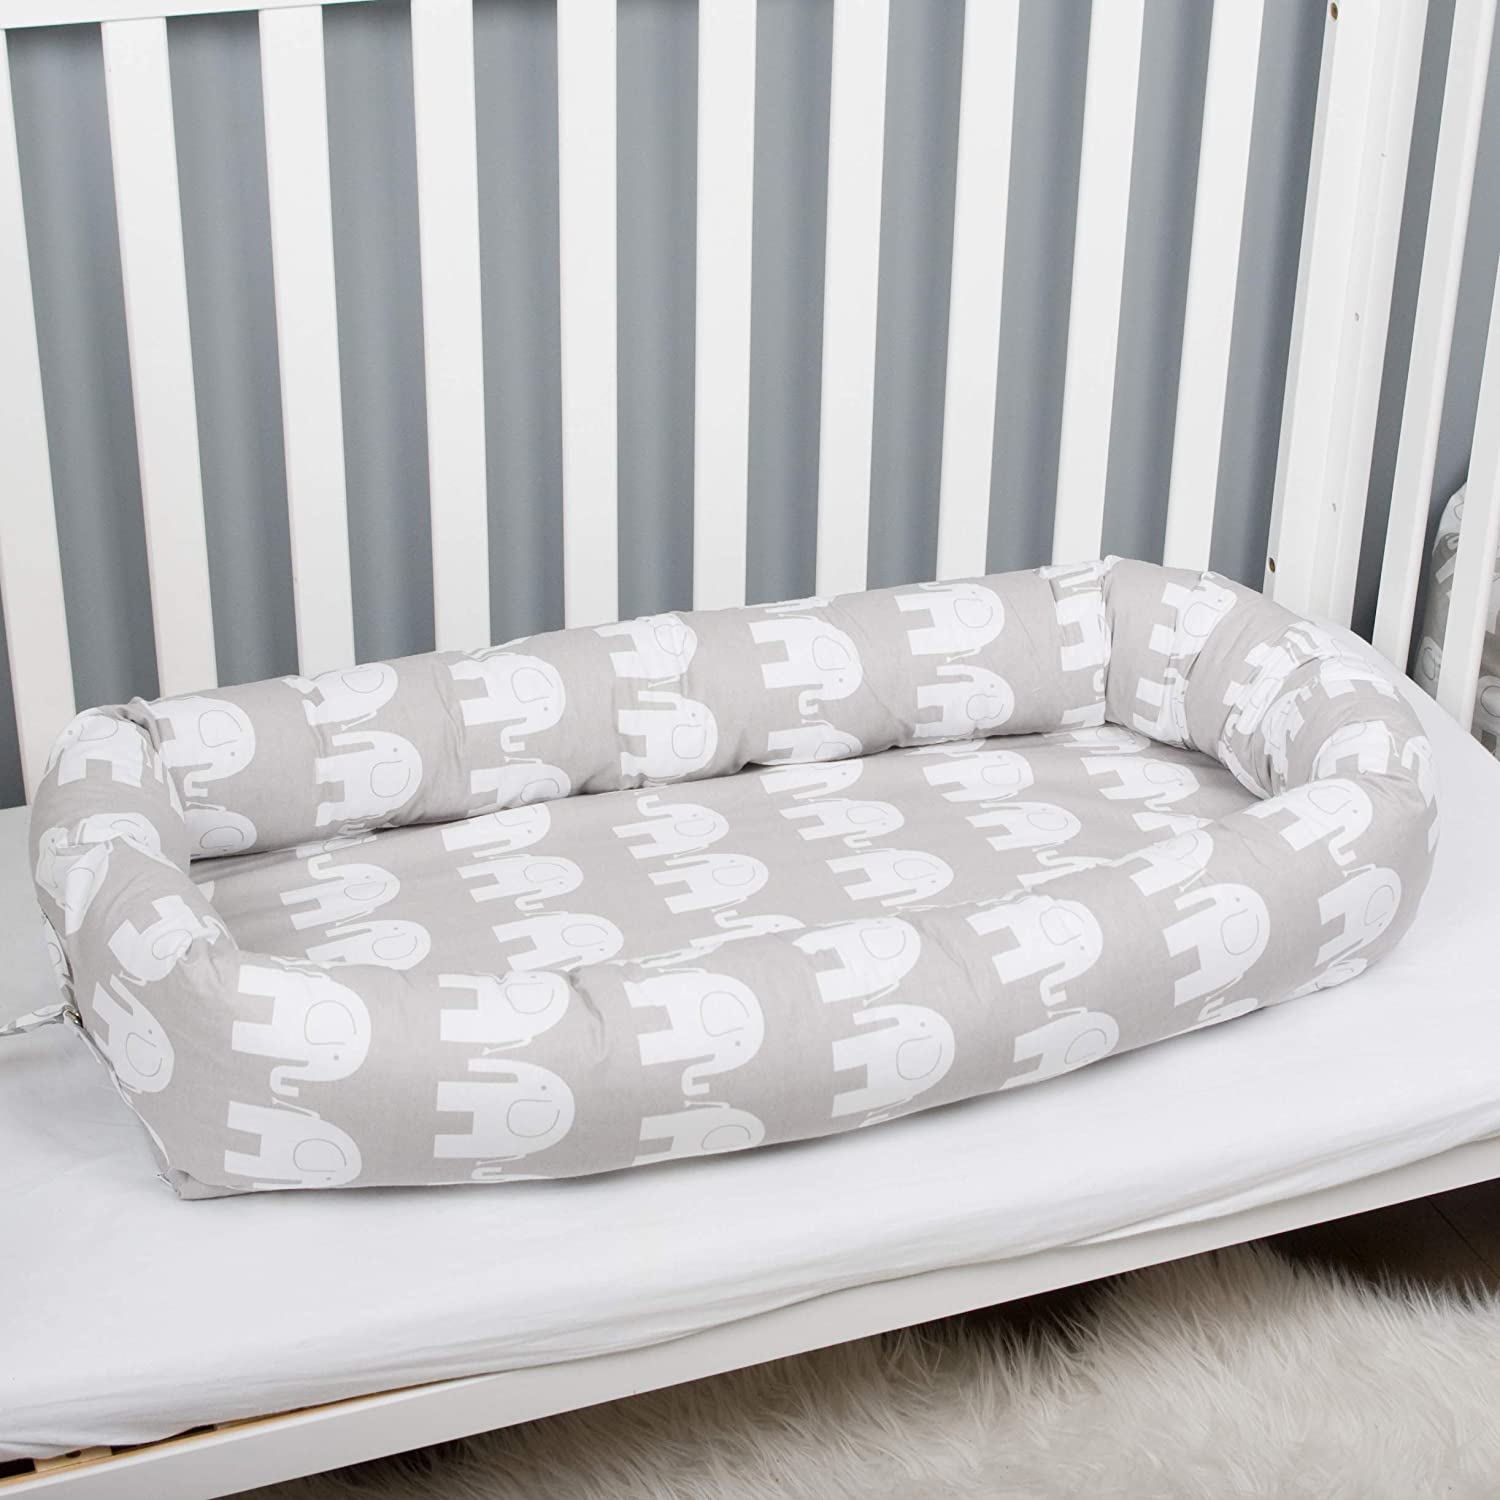 Baby Grand Nest Newborn With Bed Canopy Sleeper Toddler Portable Crib Lounger